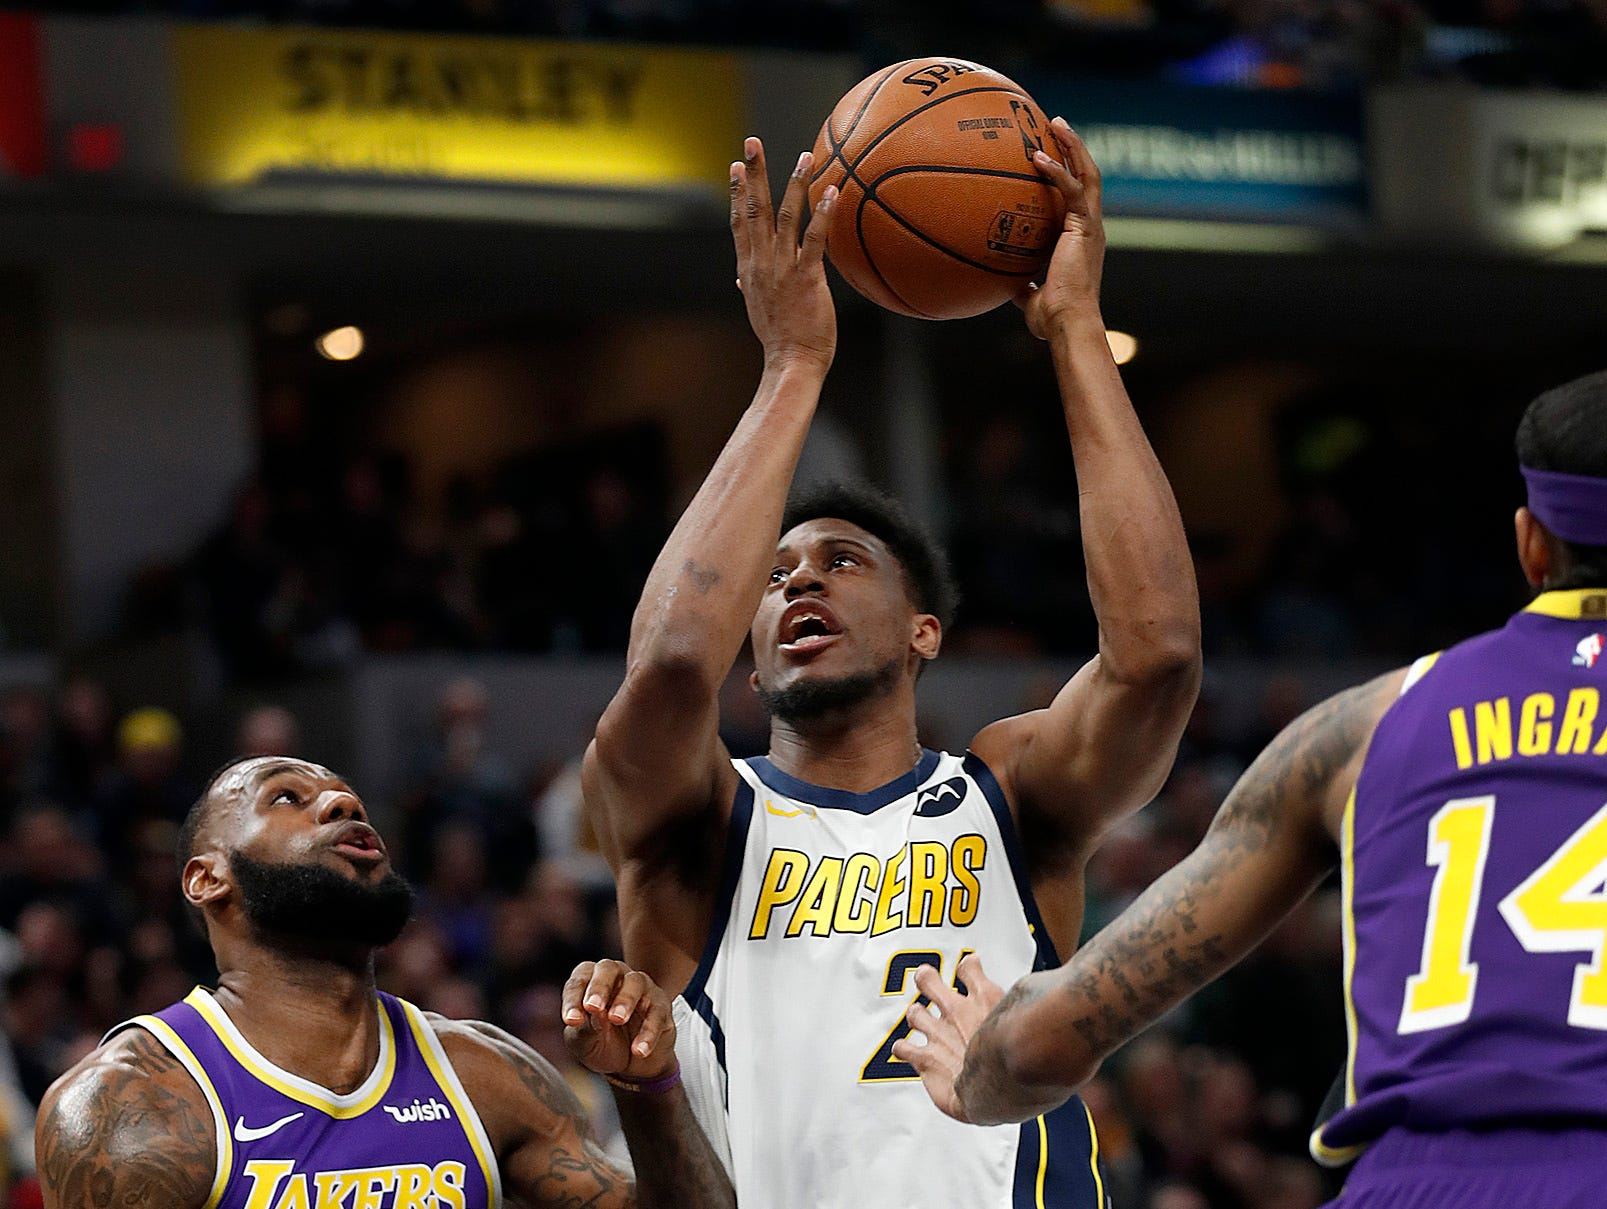 Indiana Pacers forward Thaddeus Young (21) drives on Los Angeles Lakers forward LeBron James (23) in the first half of their game at Bankers Life Fieldhouse on Tuesday, Feb. 5, 2019.